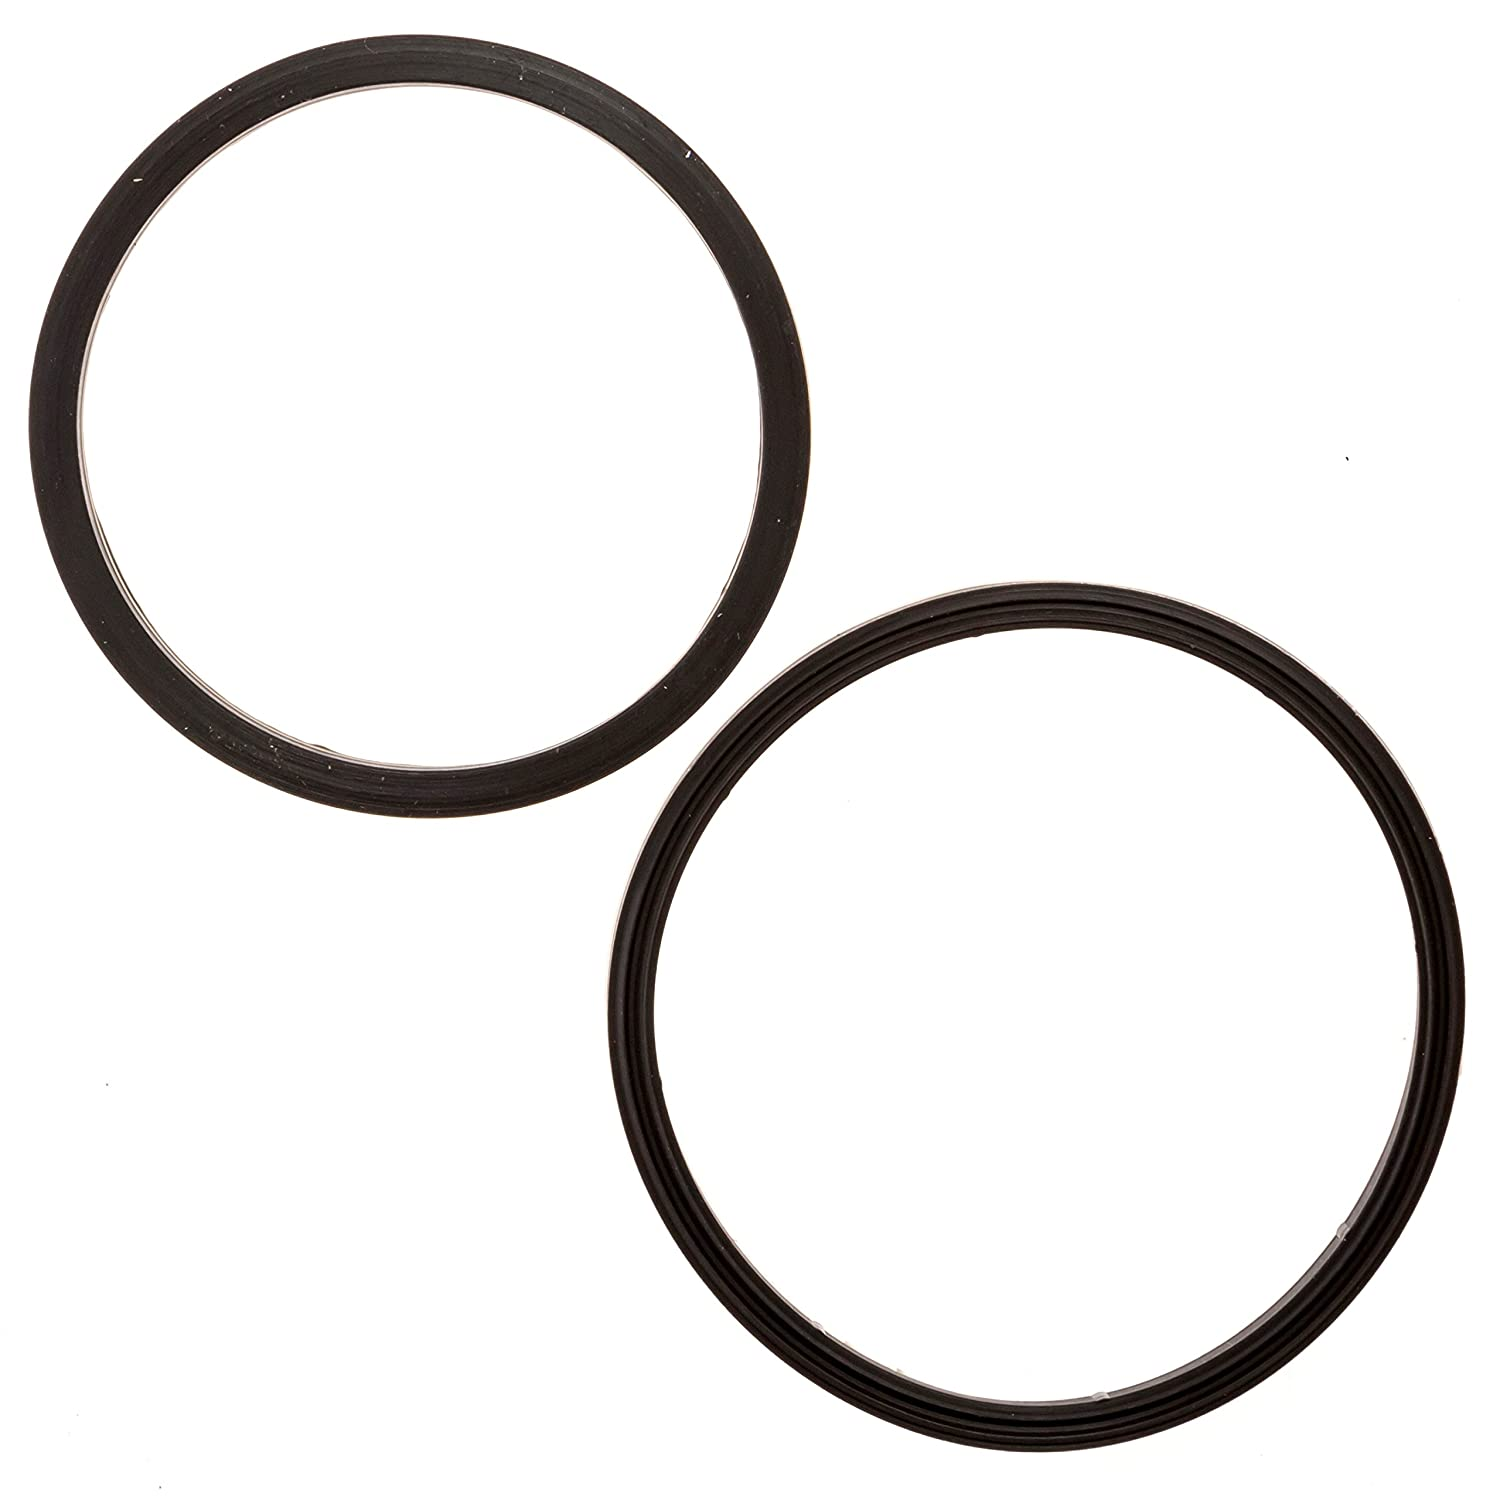 Rubber Seal Fittings Compatible with Camco RhinoFLEX//Revolution//Easy-Slip Mission Automotive 8-Pack of RV Sewer Hose Replacement Gaskets Equivalent to 39834